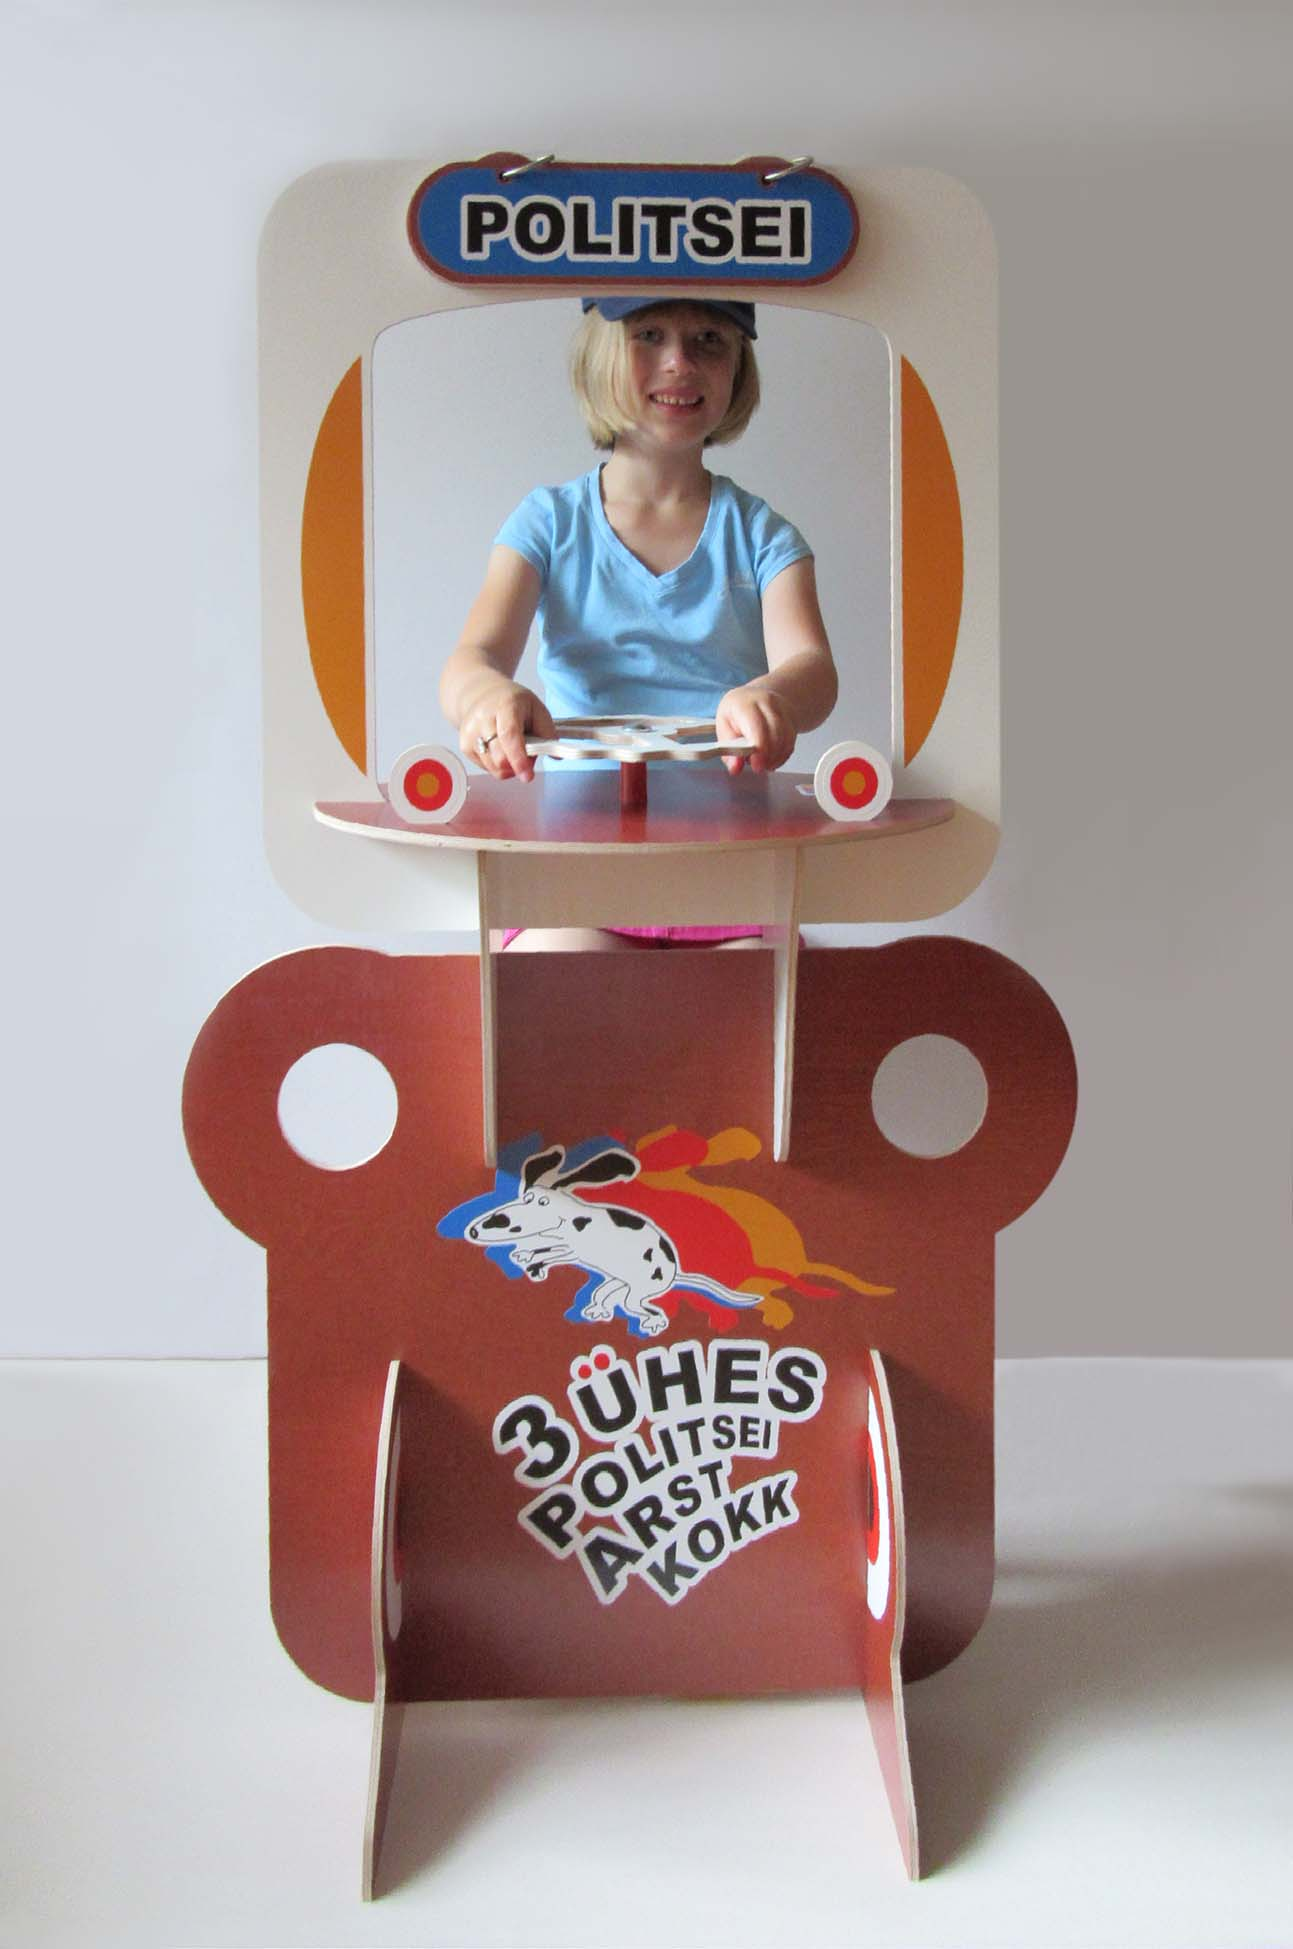 3-in-1 playset in action, the police game. Grafilius OÜ